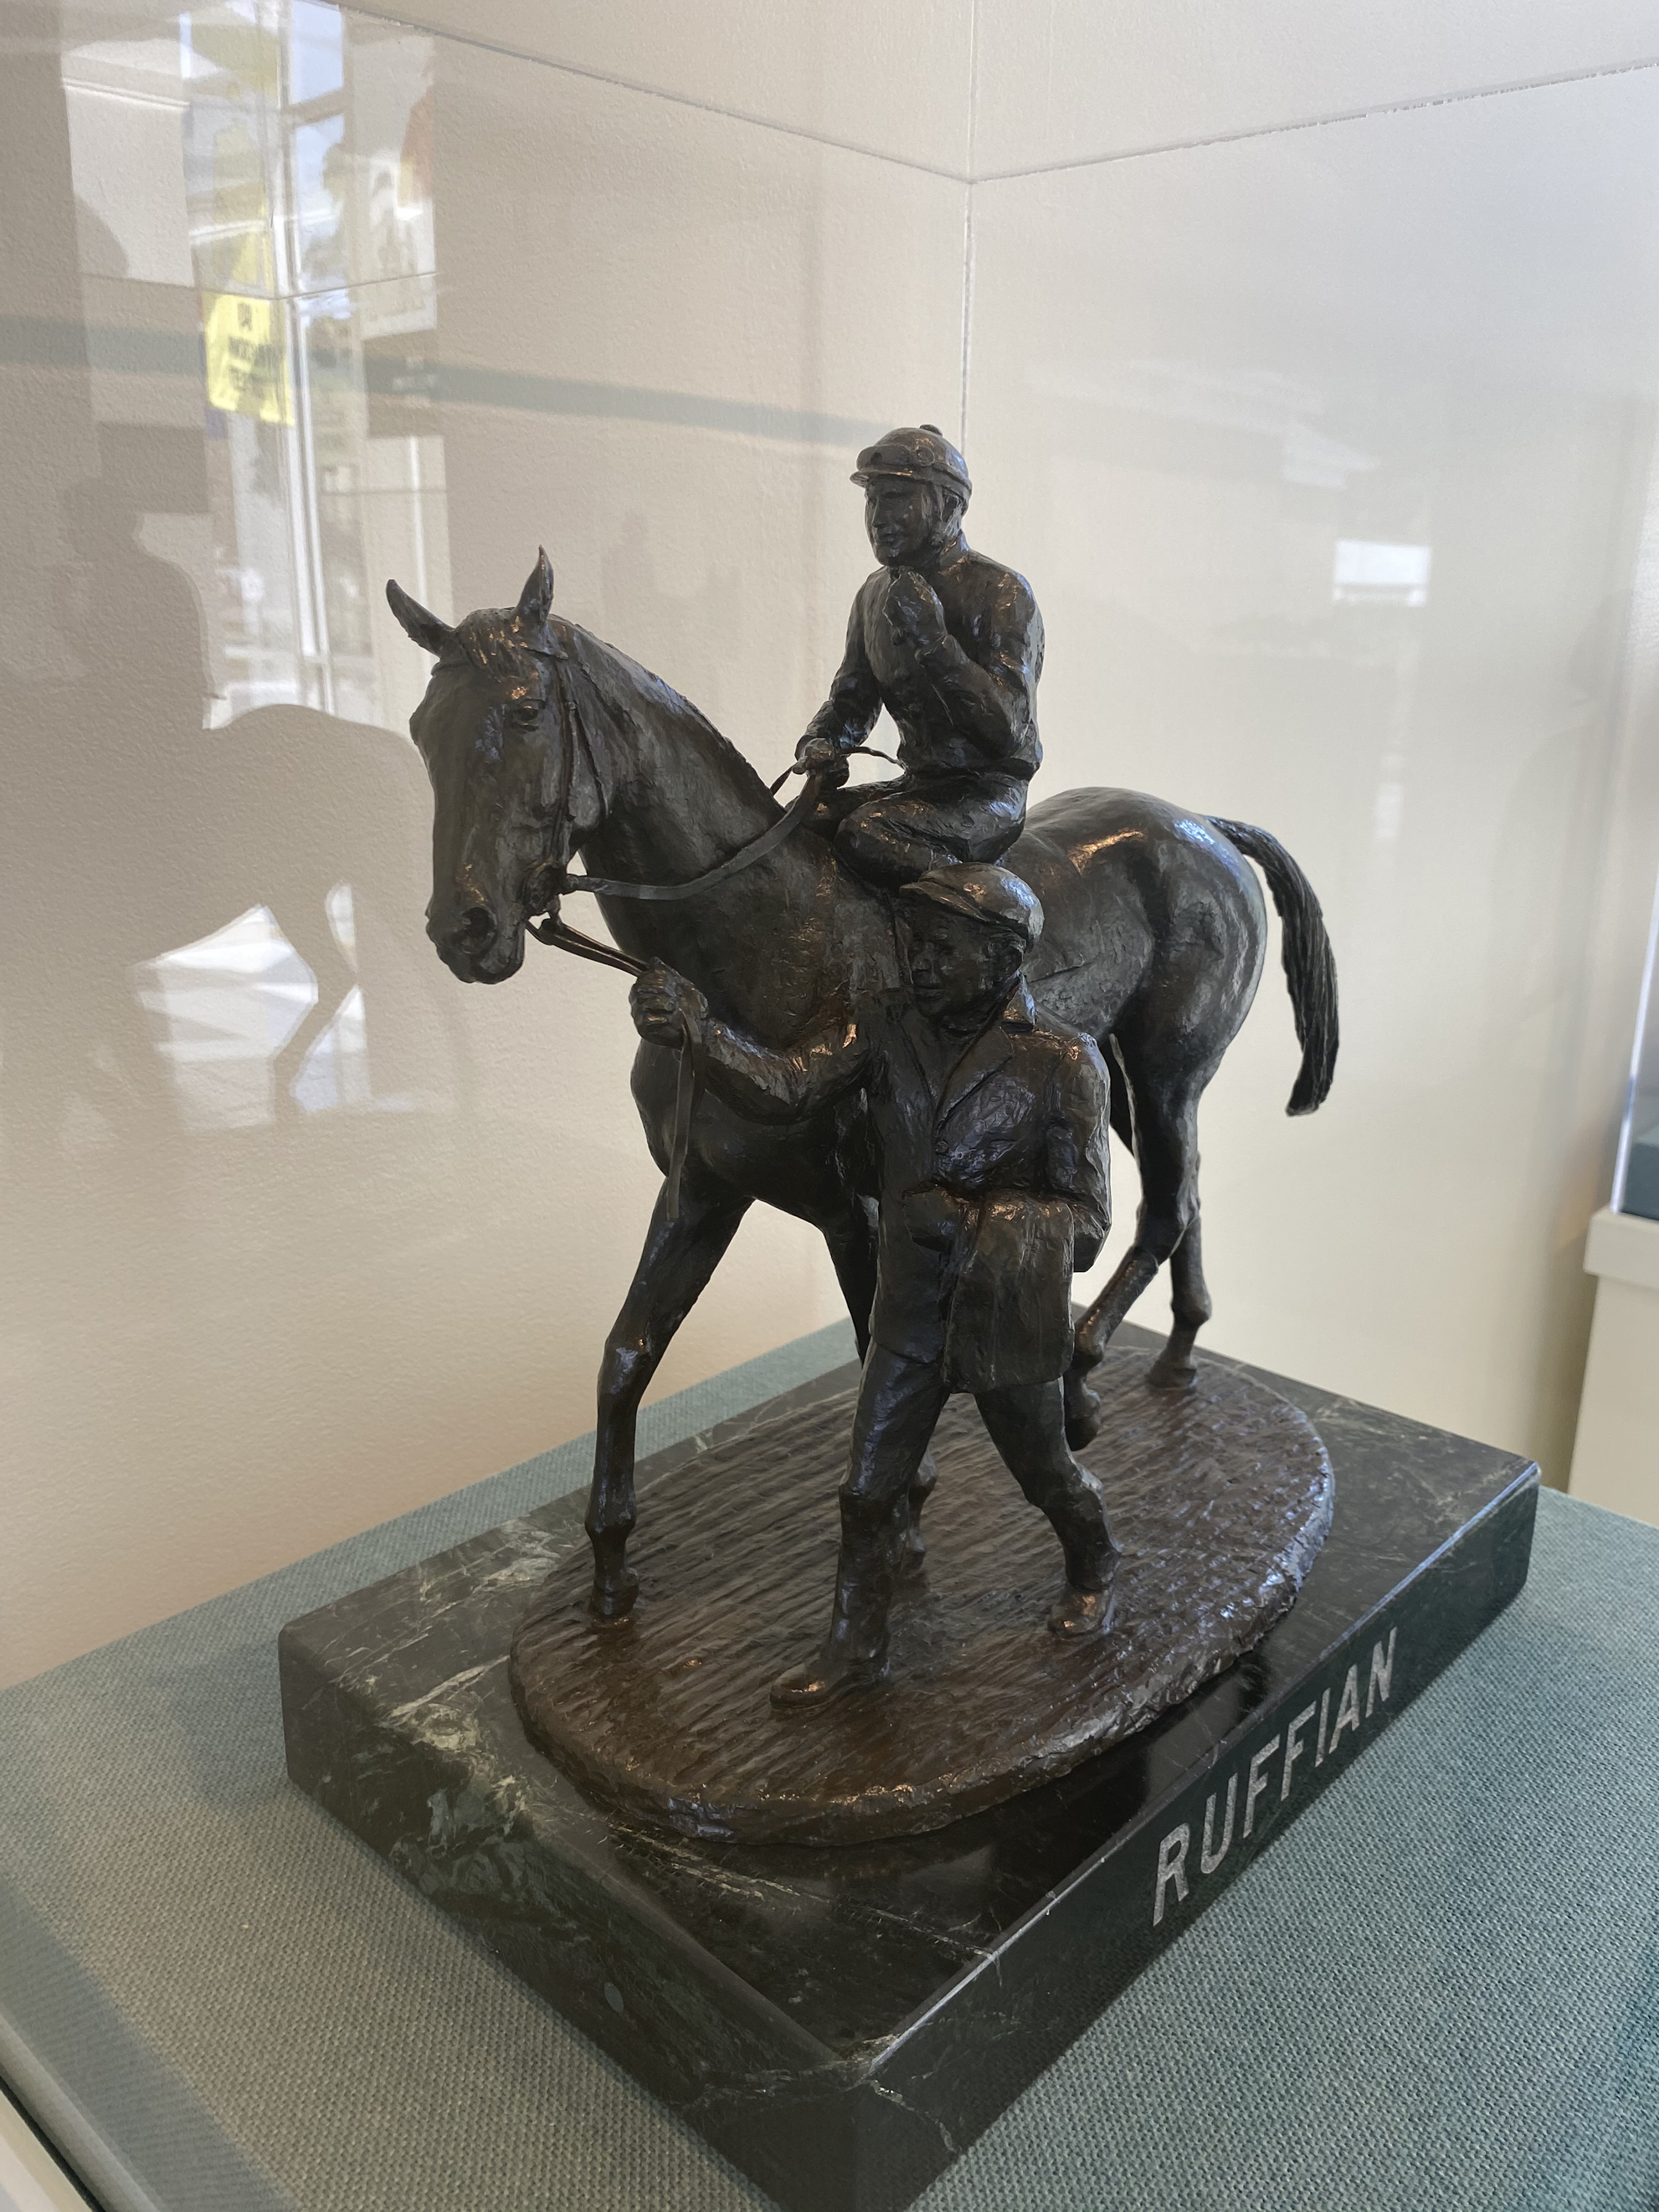 1977.6: Ruffian by Eleanor Iselin Wade, bronze, Gift: Mr. and Mrs. Kenneth Schiffer